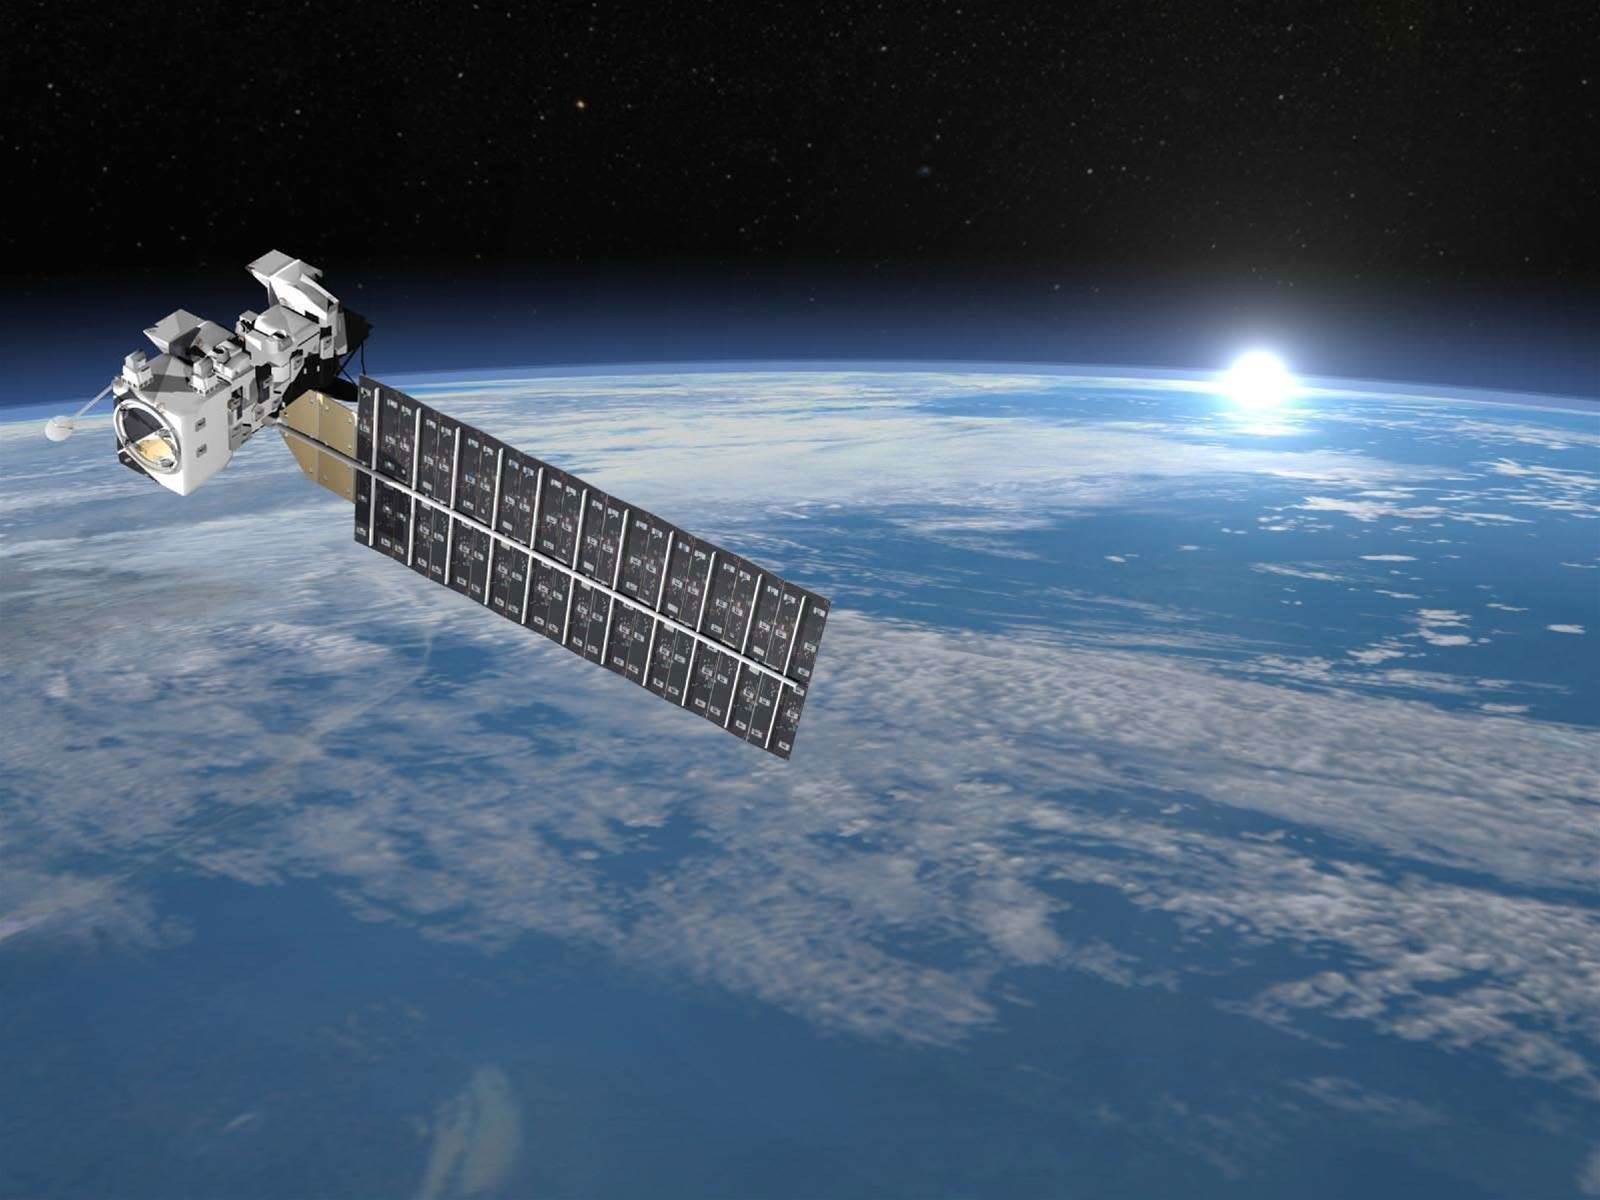 SpaceX plans to use satellites to deliver internet